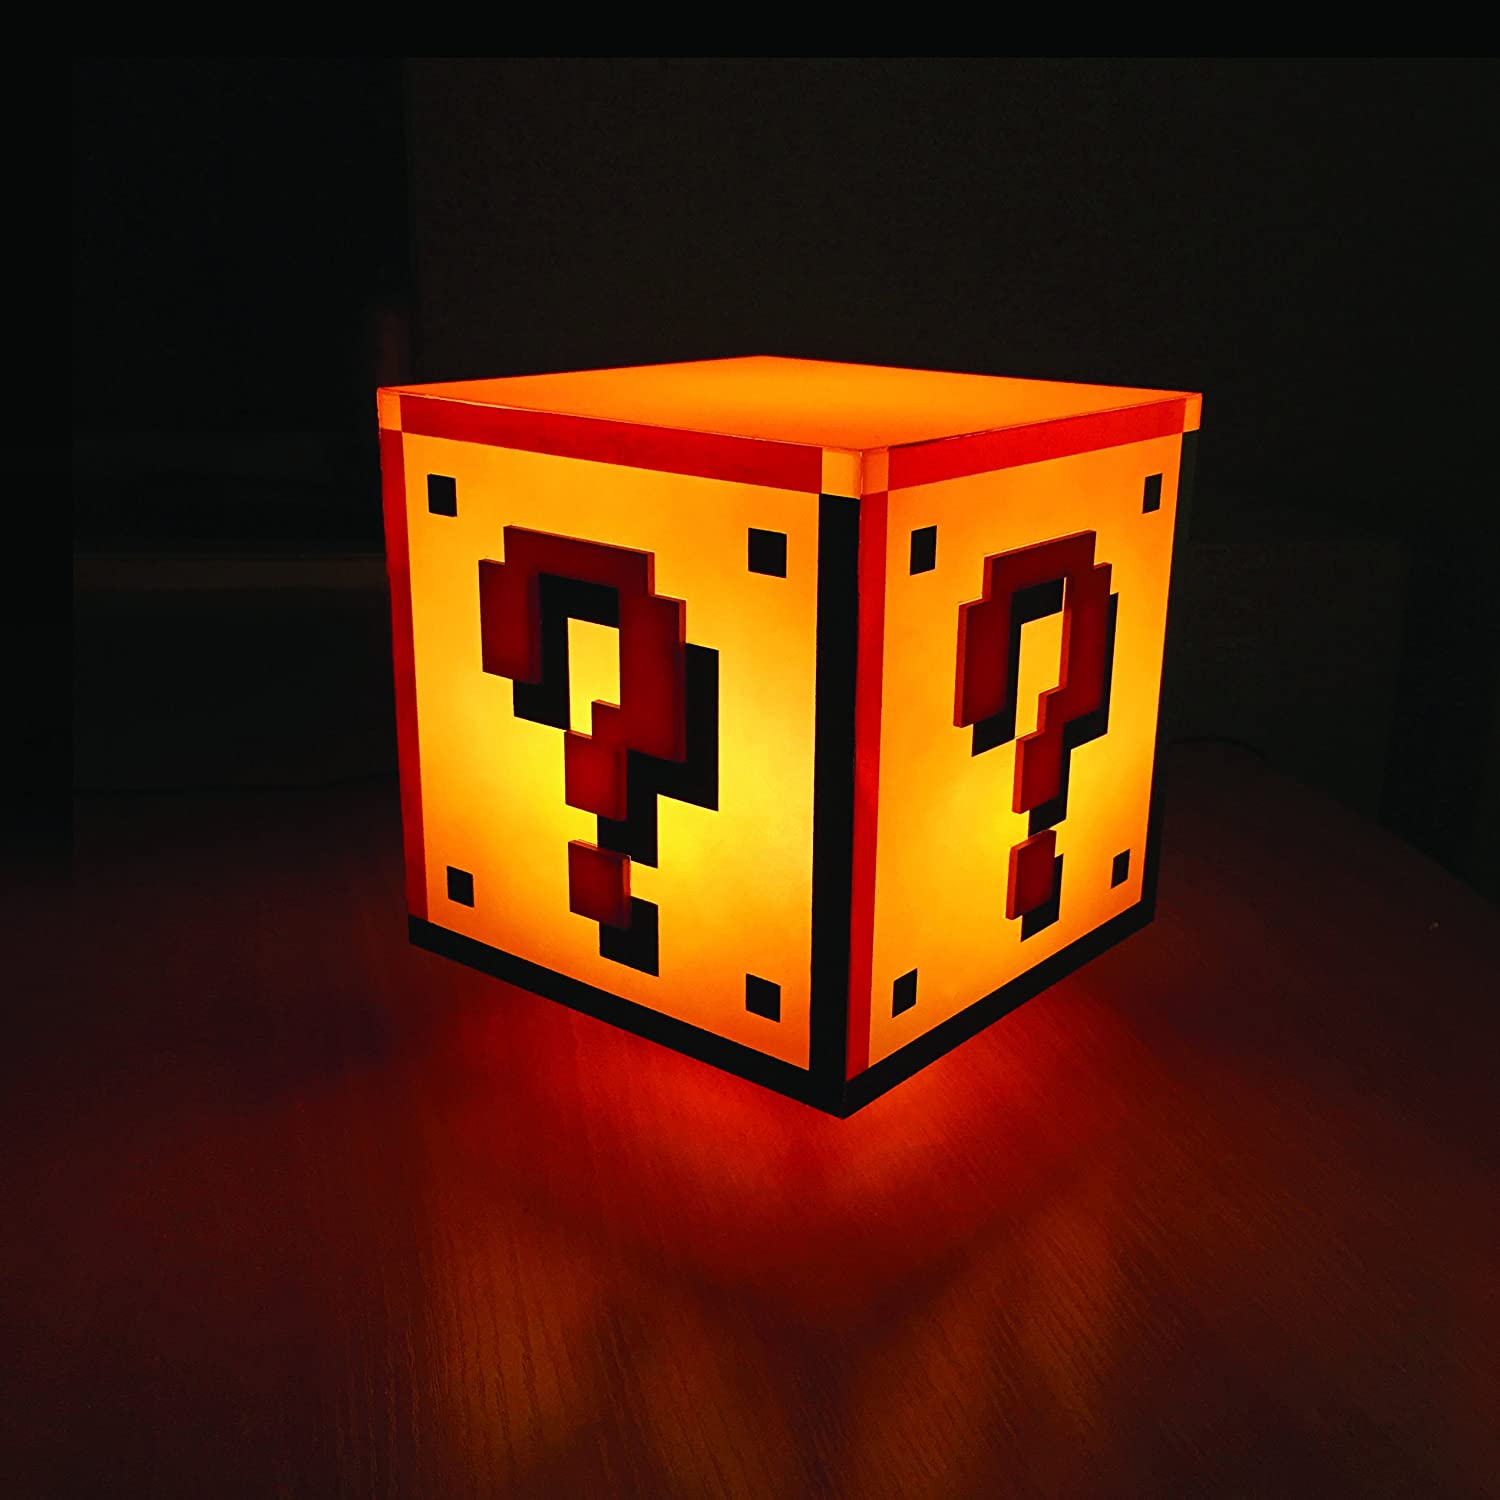 amazon com paladone super mario question block night light toys amazon com paladone super mario question block night light toys games